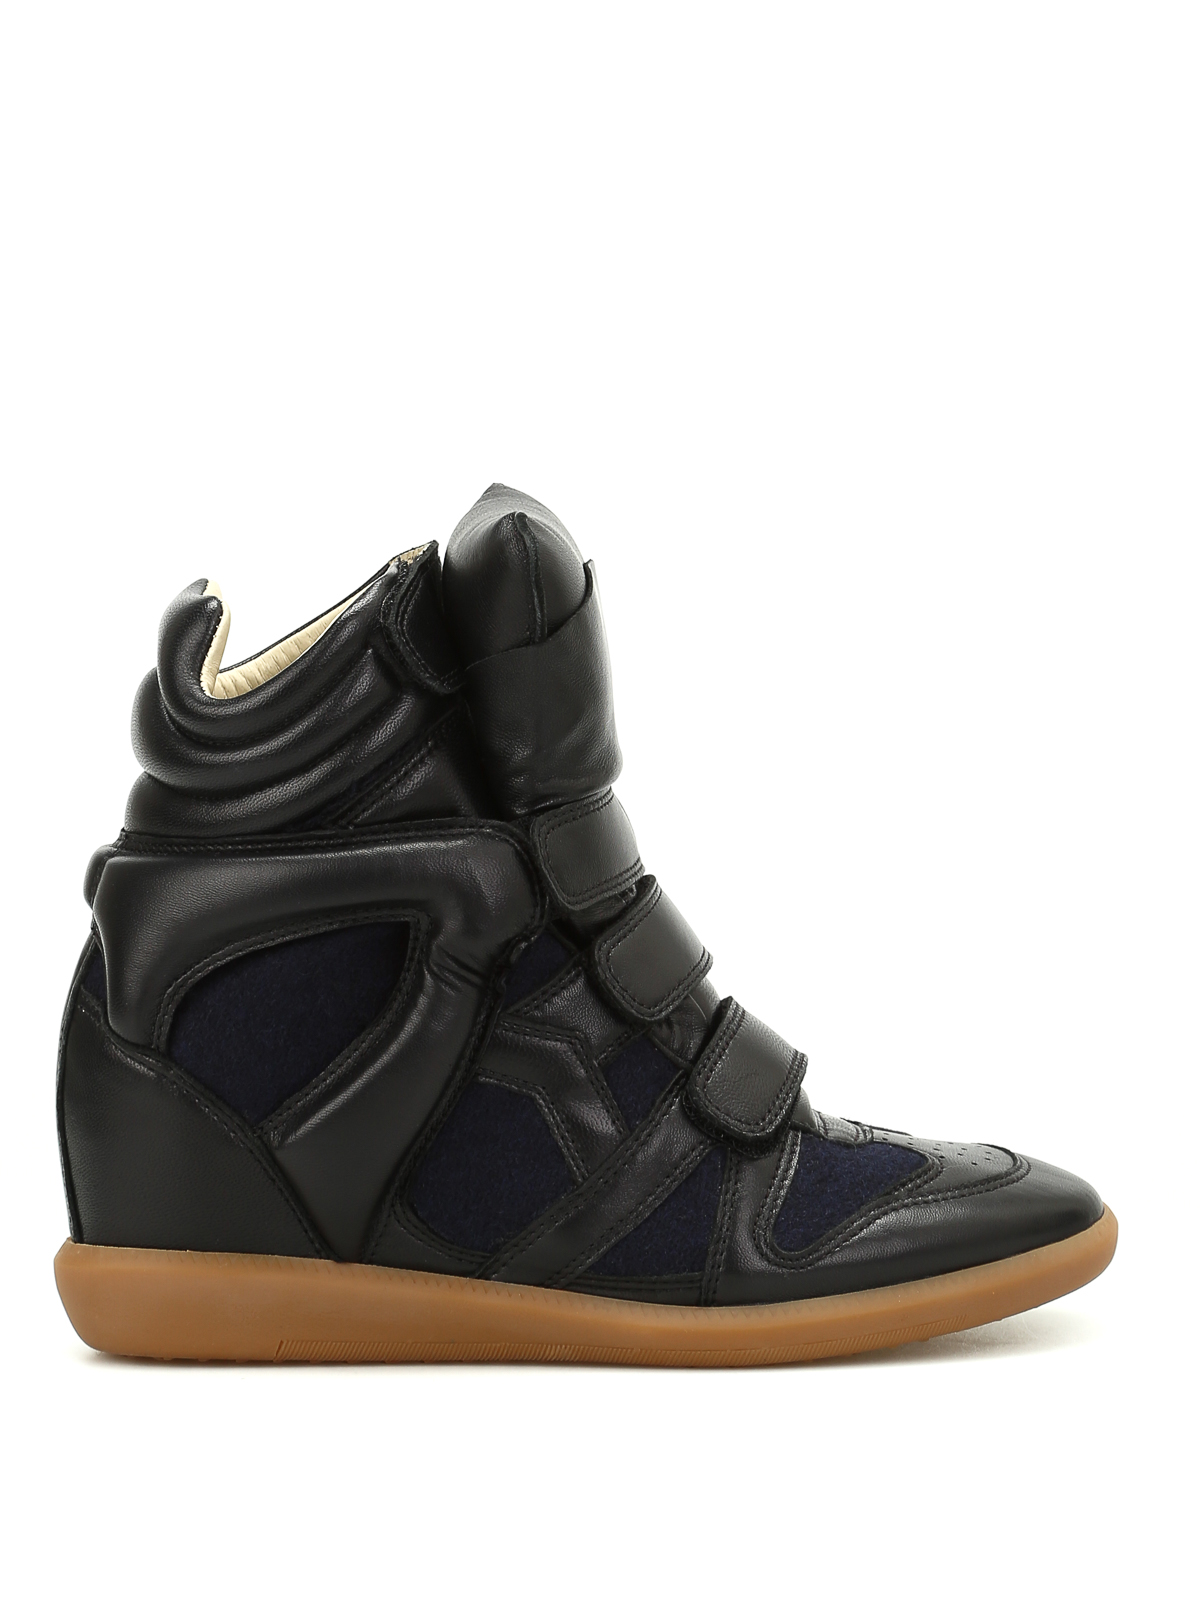 bekett flannel high top sneakers by isabel marant trainers shop online at. Black Bedroom Furniture Sets. Home Design Ideas